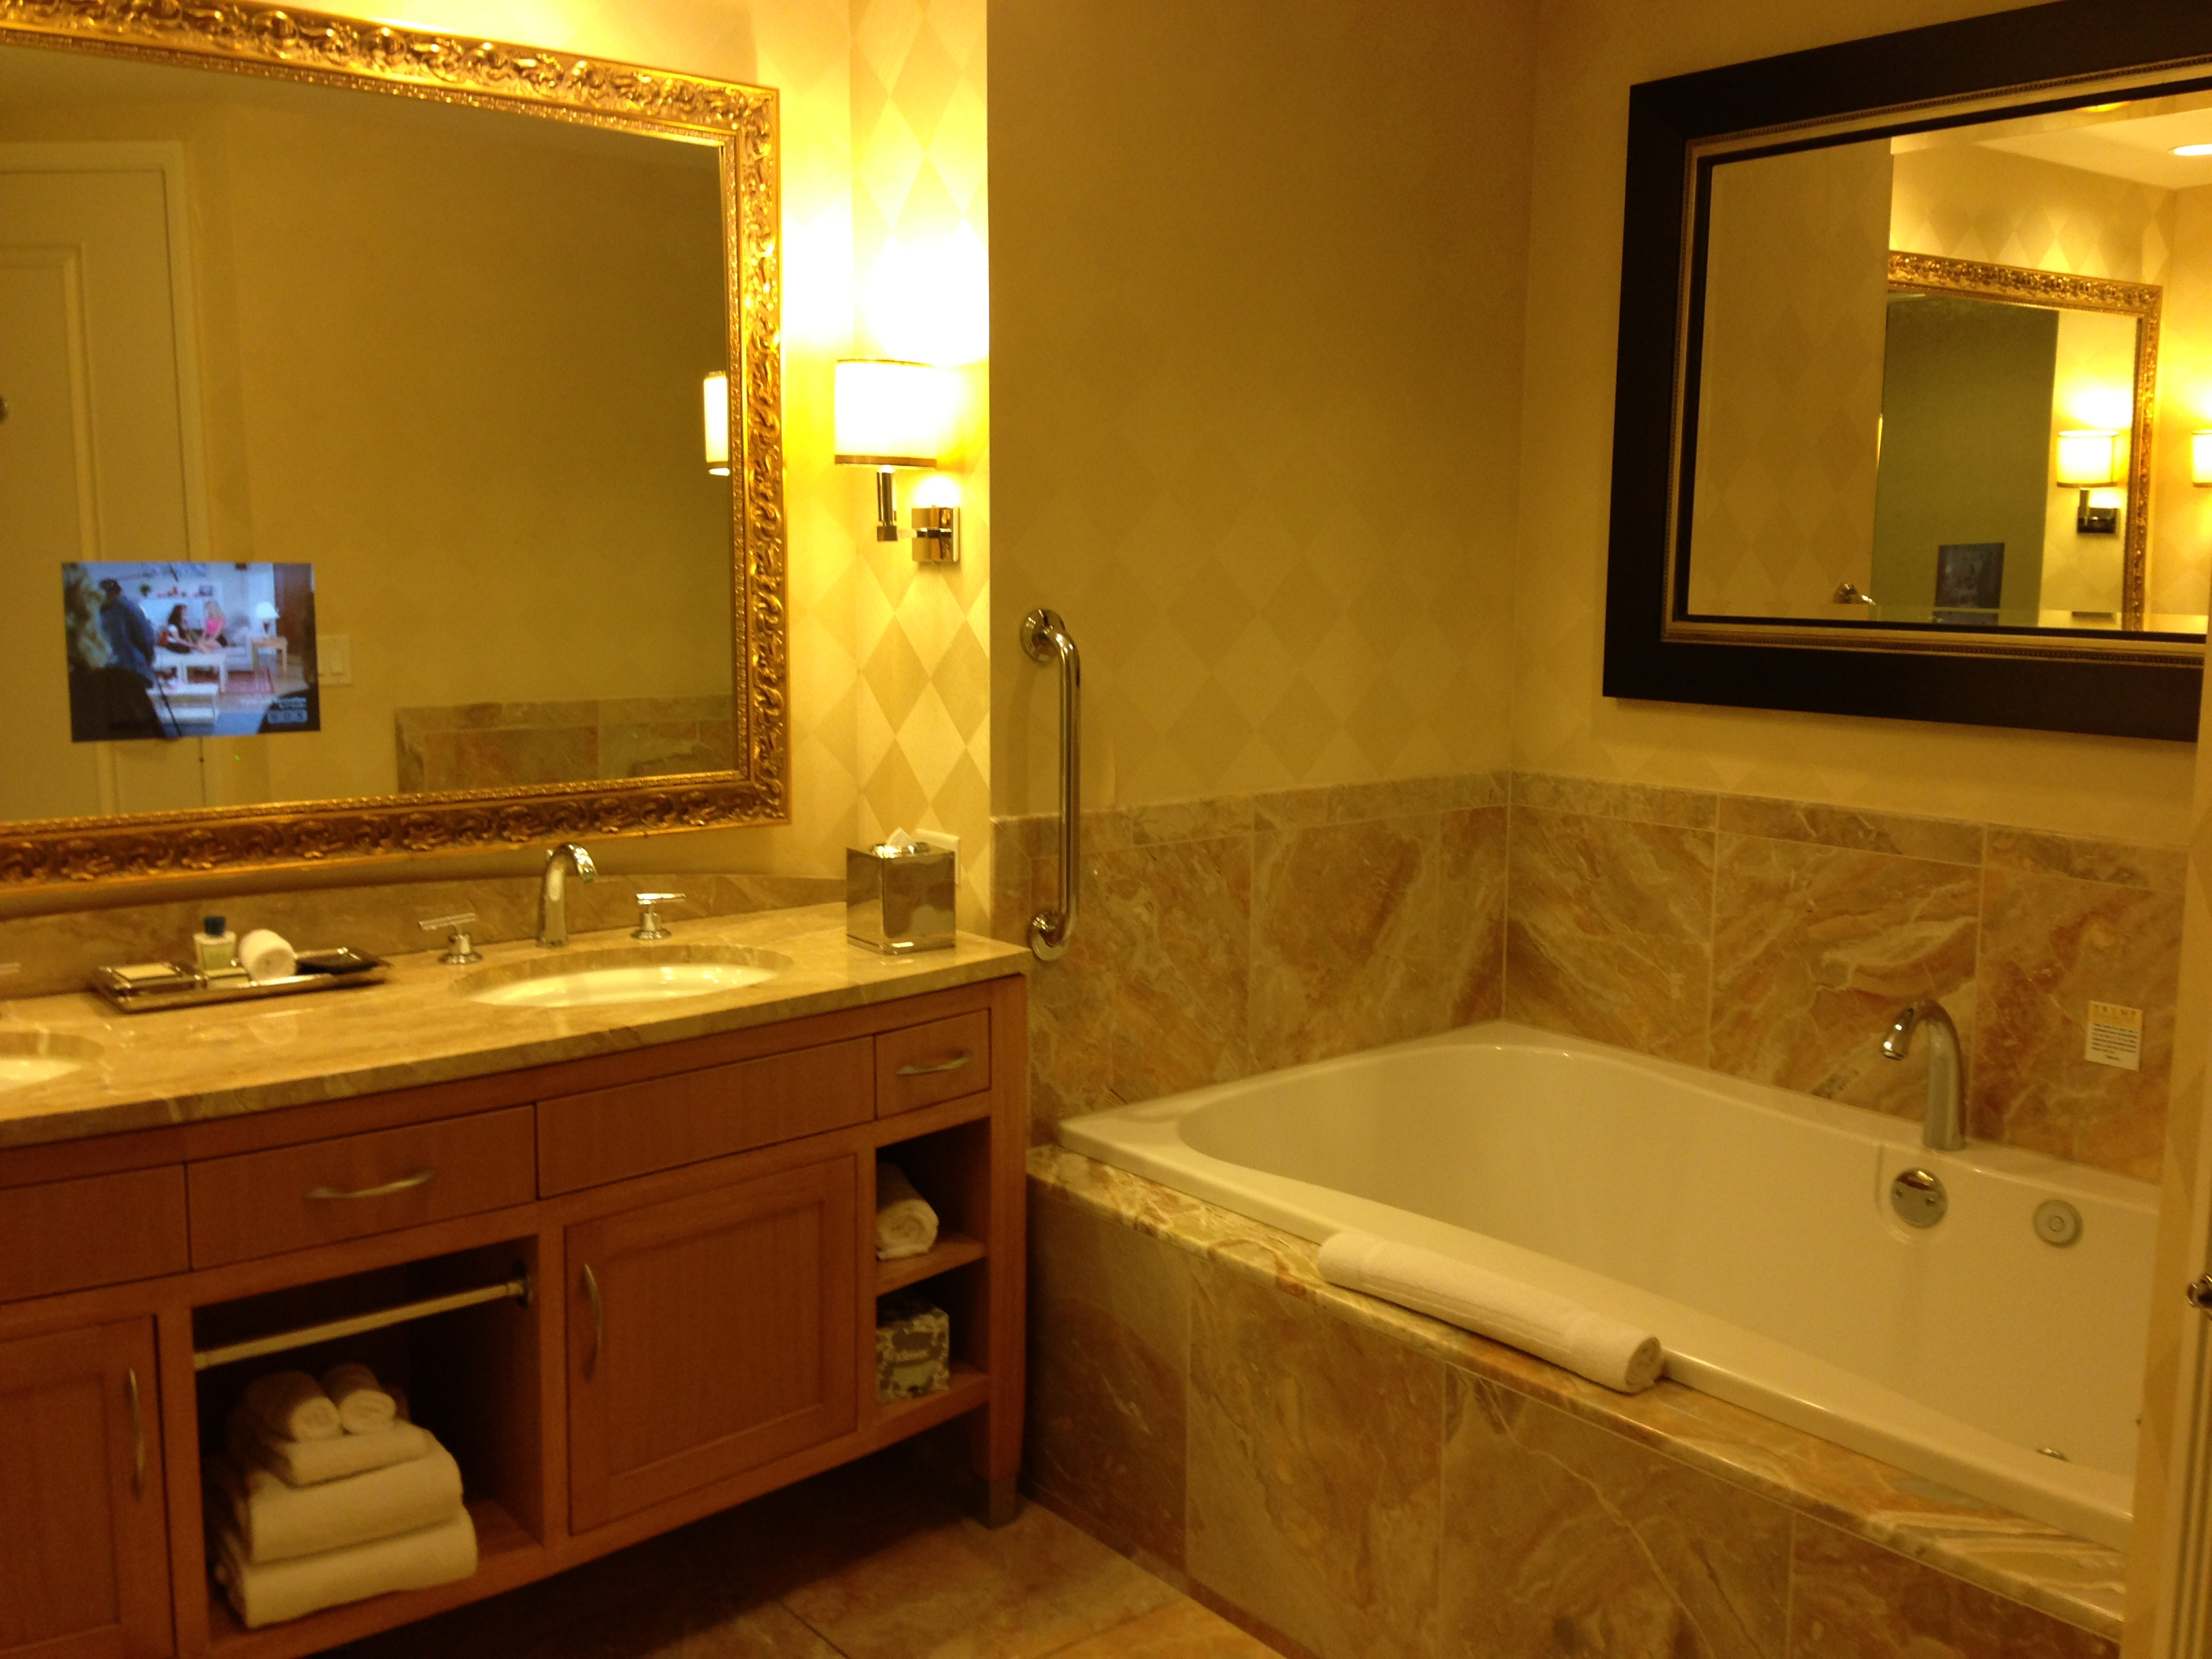 Bathroom Mirrors With Tv Built In Las Vegas Trump International Hotel All The Glitz